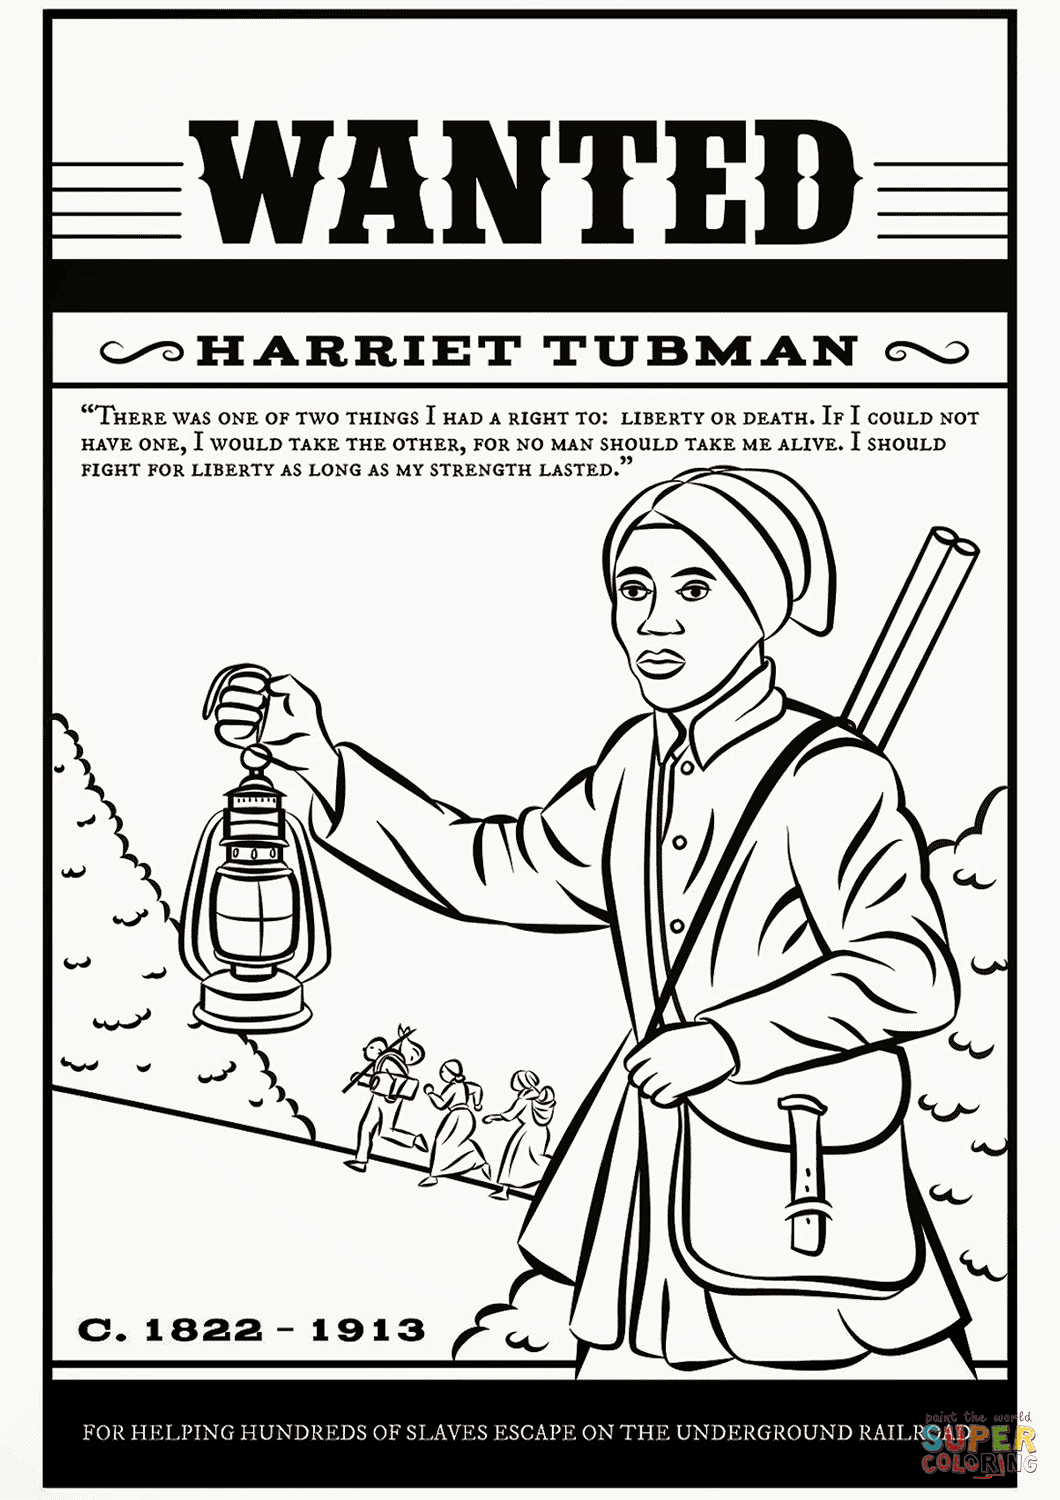 1060x1500 Harriet Tubman Coloring Page Free Printable Coloring Pages